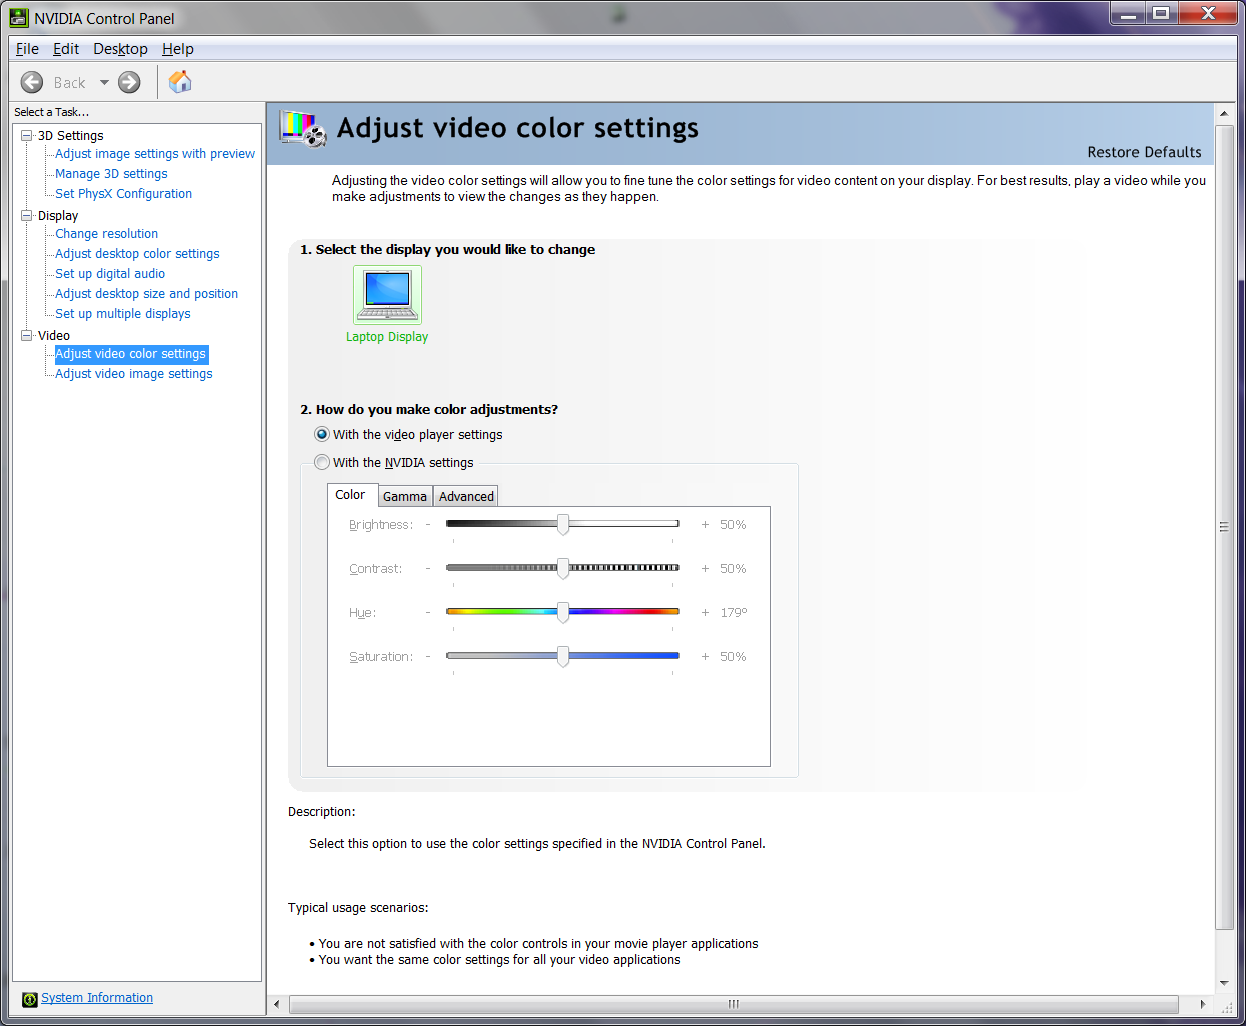 Video Settings adjustments on Windows Media Player 12 have no effect